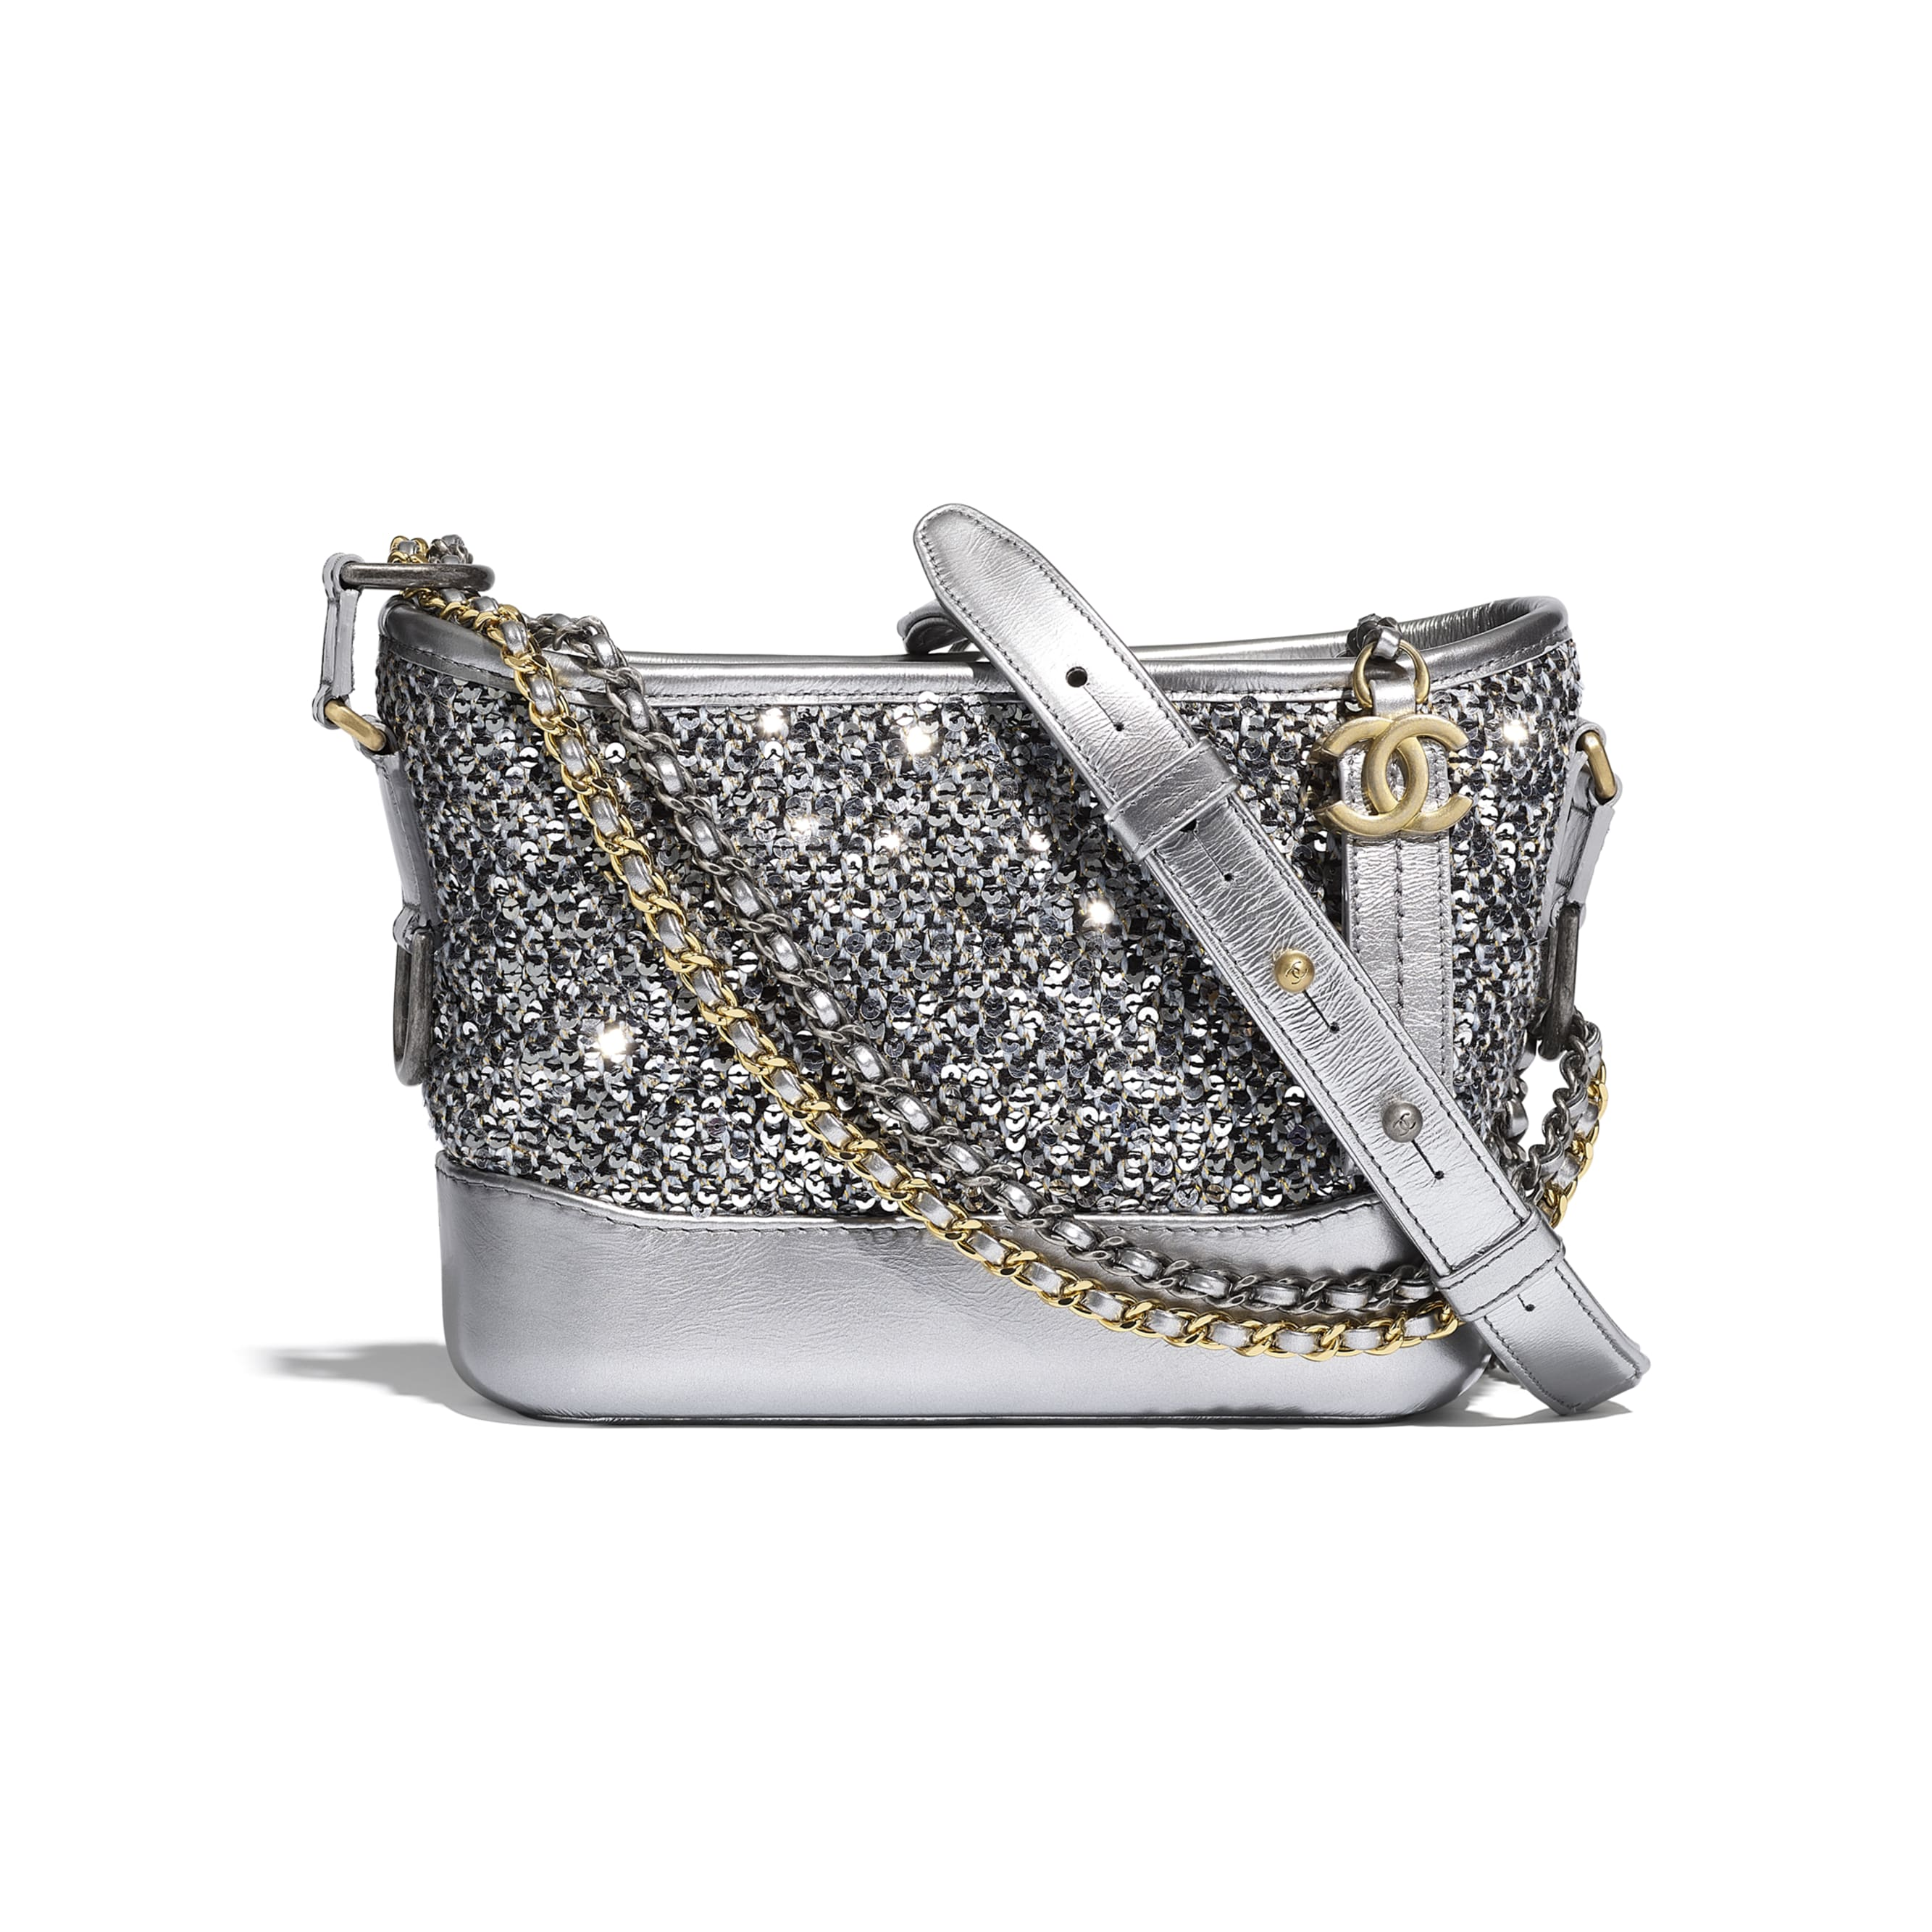 CHANEL'S GABRIELLE Small Hobo Bag - Silver, Black & Gold - Tweed, Sequins, Calfskin, Gold-Tone, Silver-Tone & Ruthenium-Finish Metal - CHANEL - Default view - see standard sized version